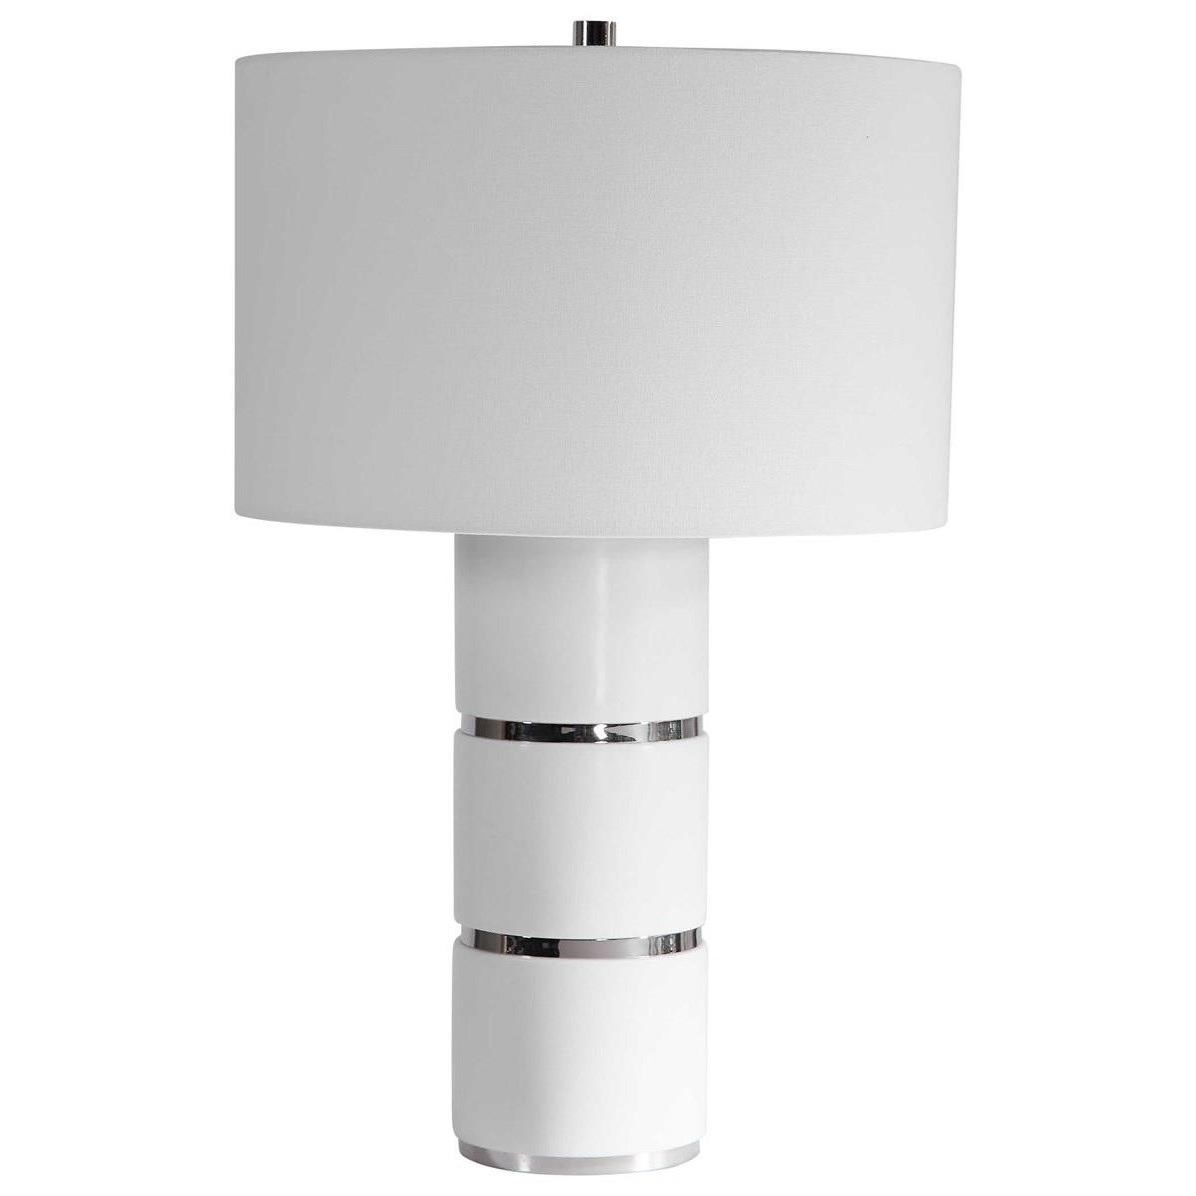 Grania White Marble Table Lamp